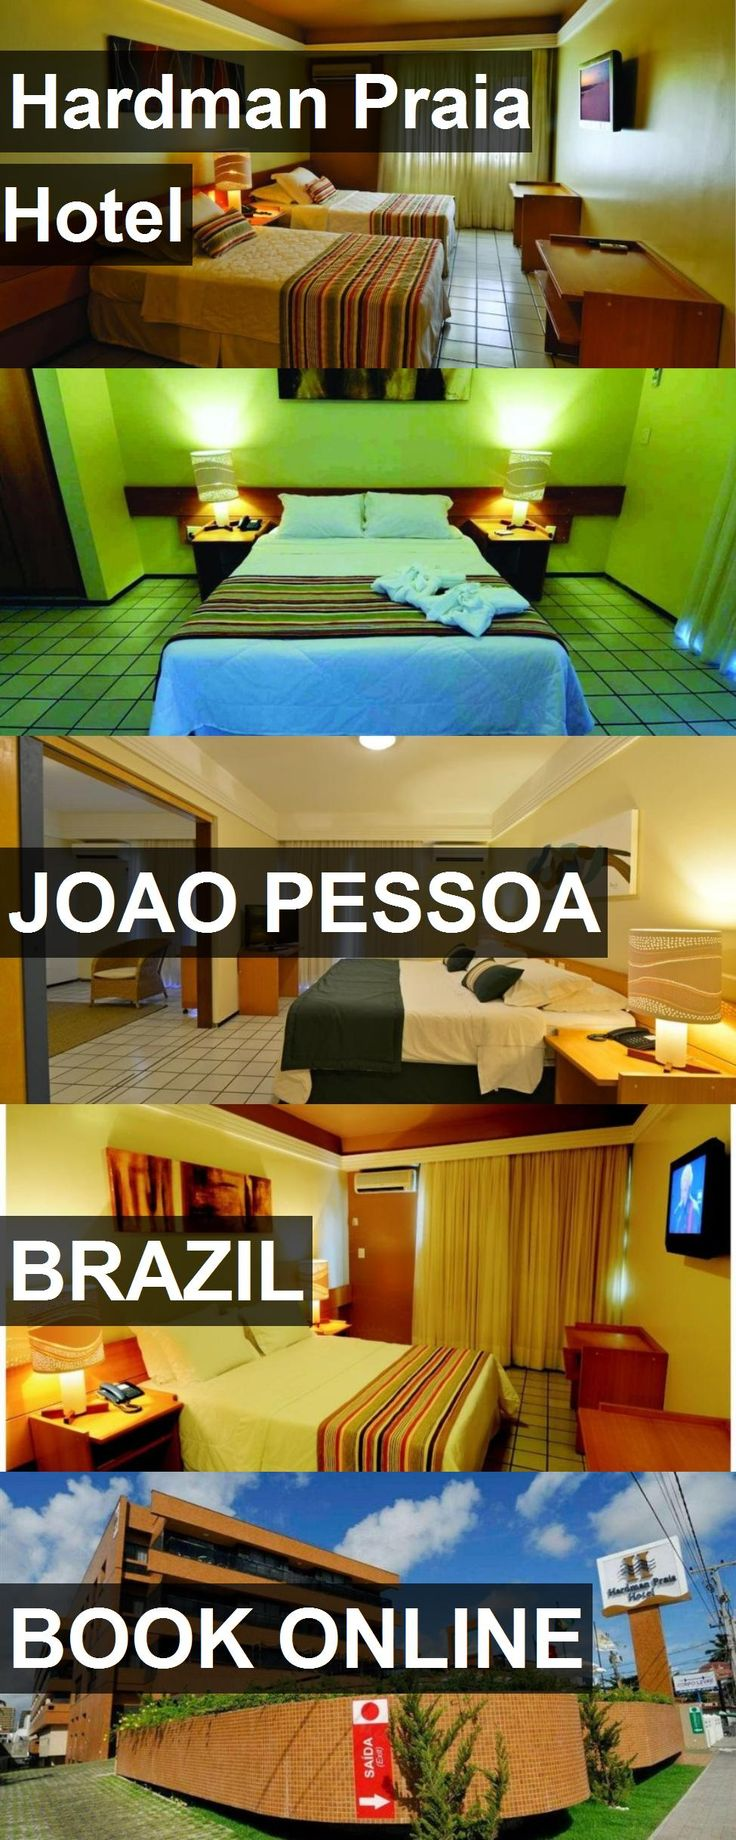 Hotel Hardman Praia Hotel in Joao Pessoa, Brazil. For more information, photos, reviews and best prices please follow the link. #Brazil #JoaoPessoa #hotel #travel #vacation